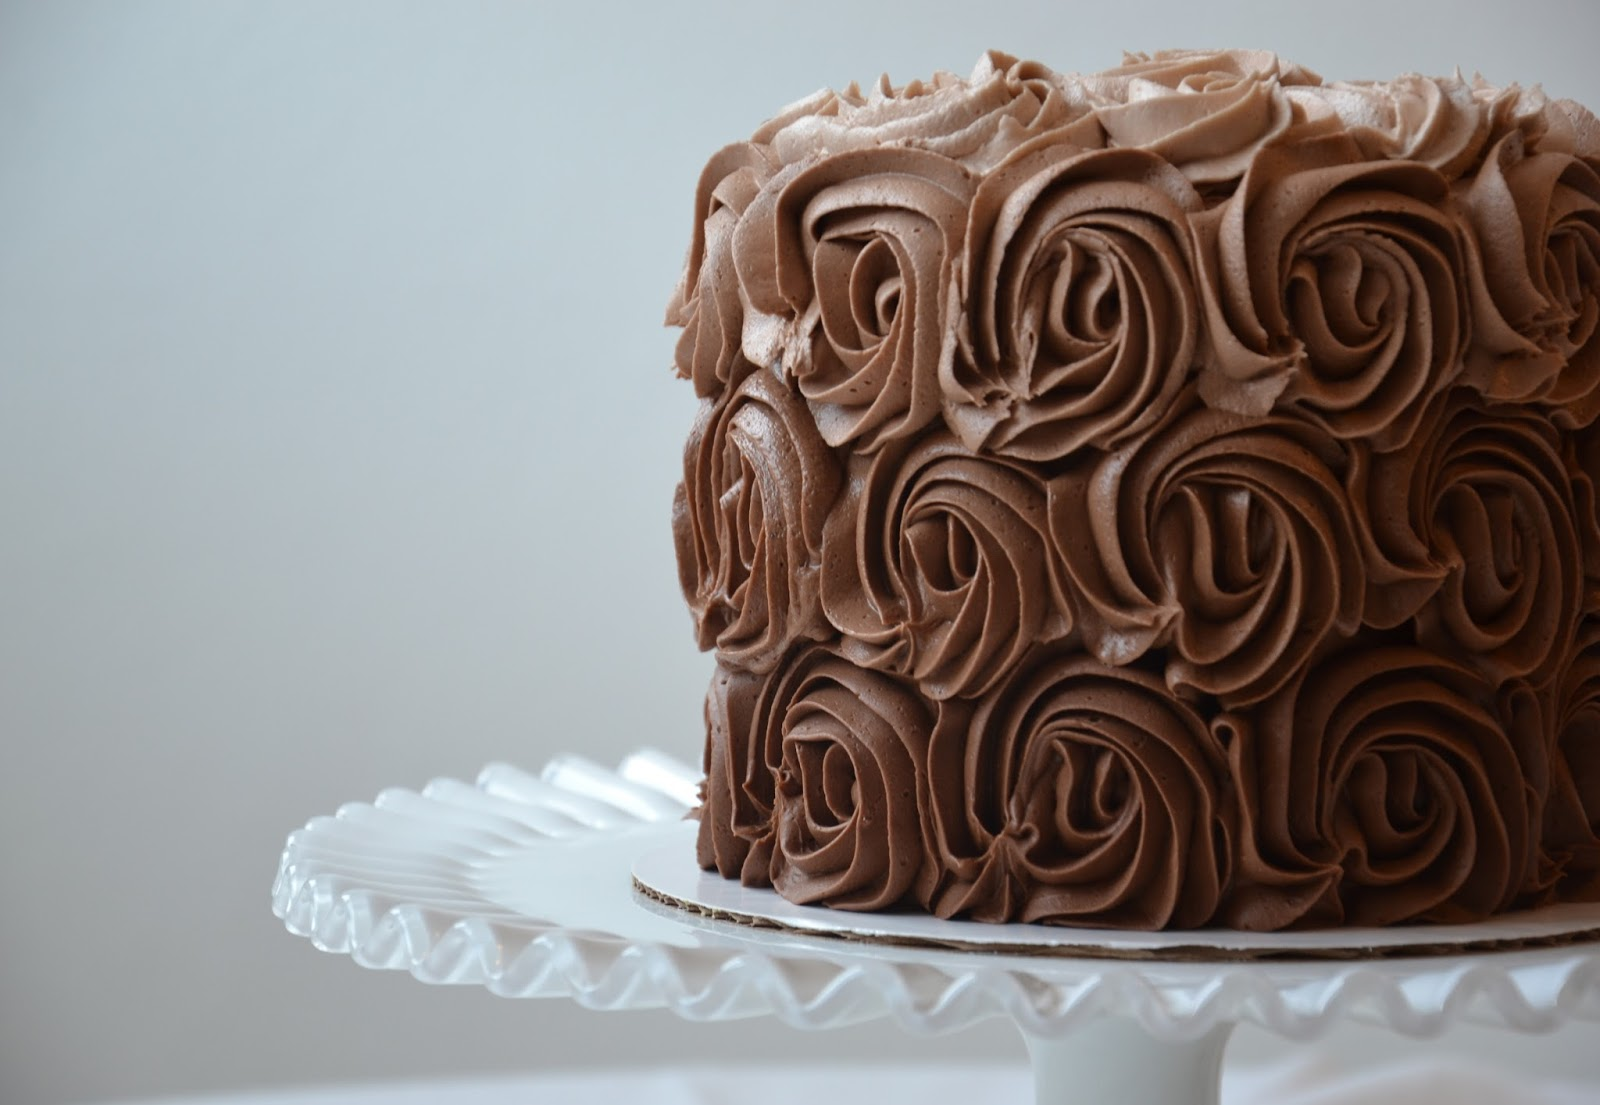 Cake Layered With Whipped Chocolate Frosting And Chocolate Ganache ...